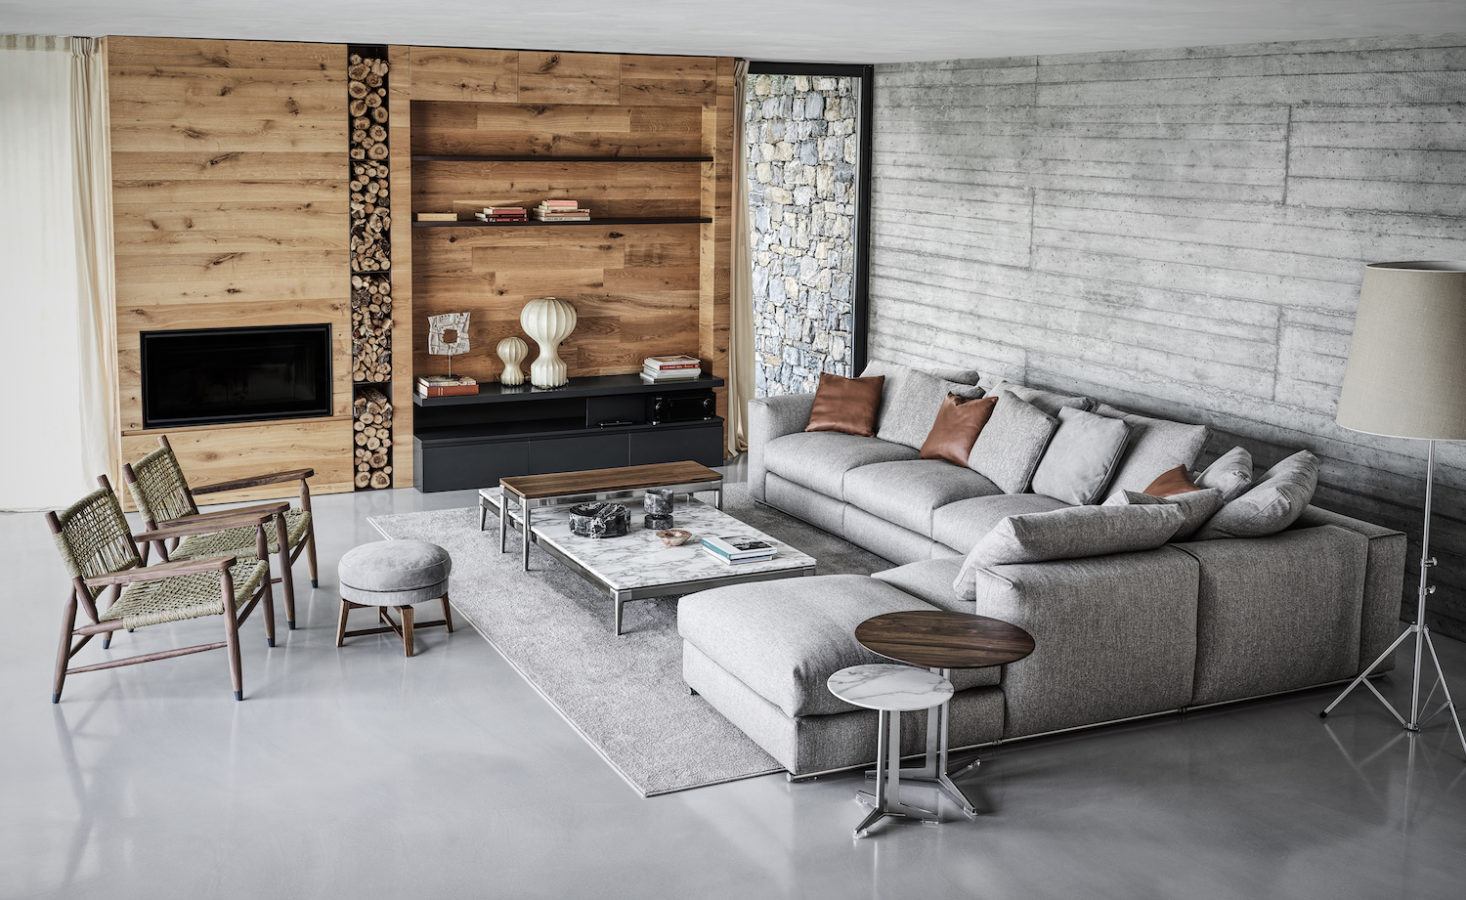 Which Flexform Furniture Piece Do You Need In Your Home?